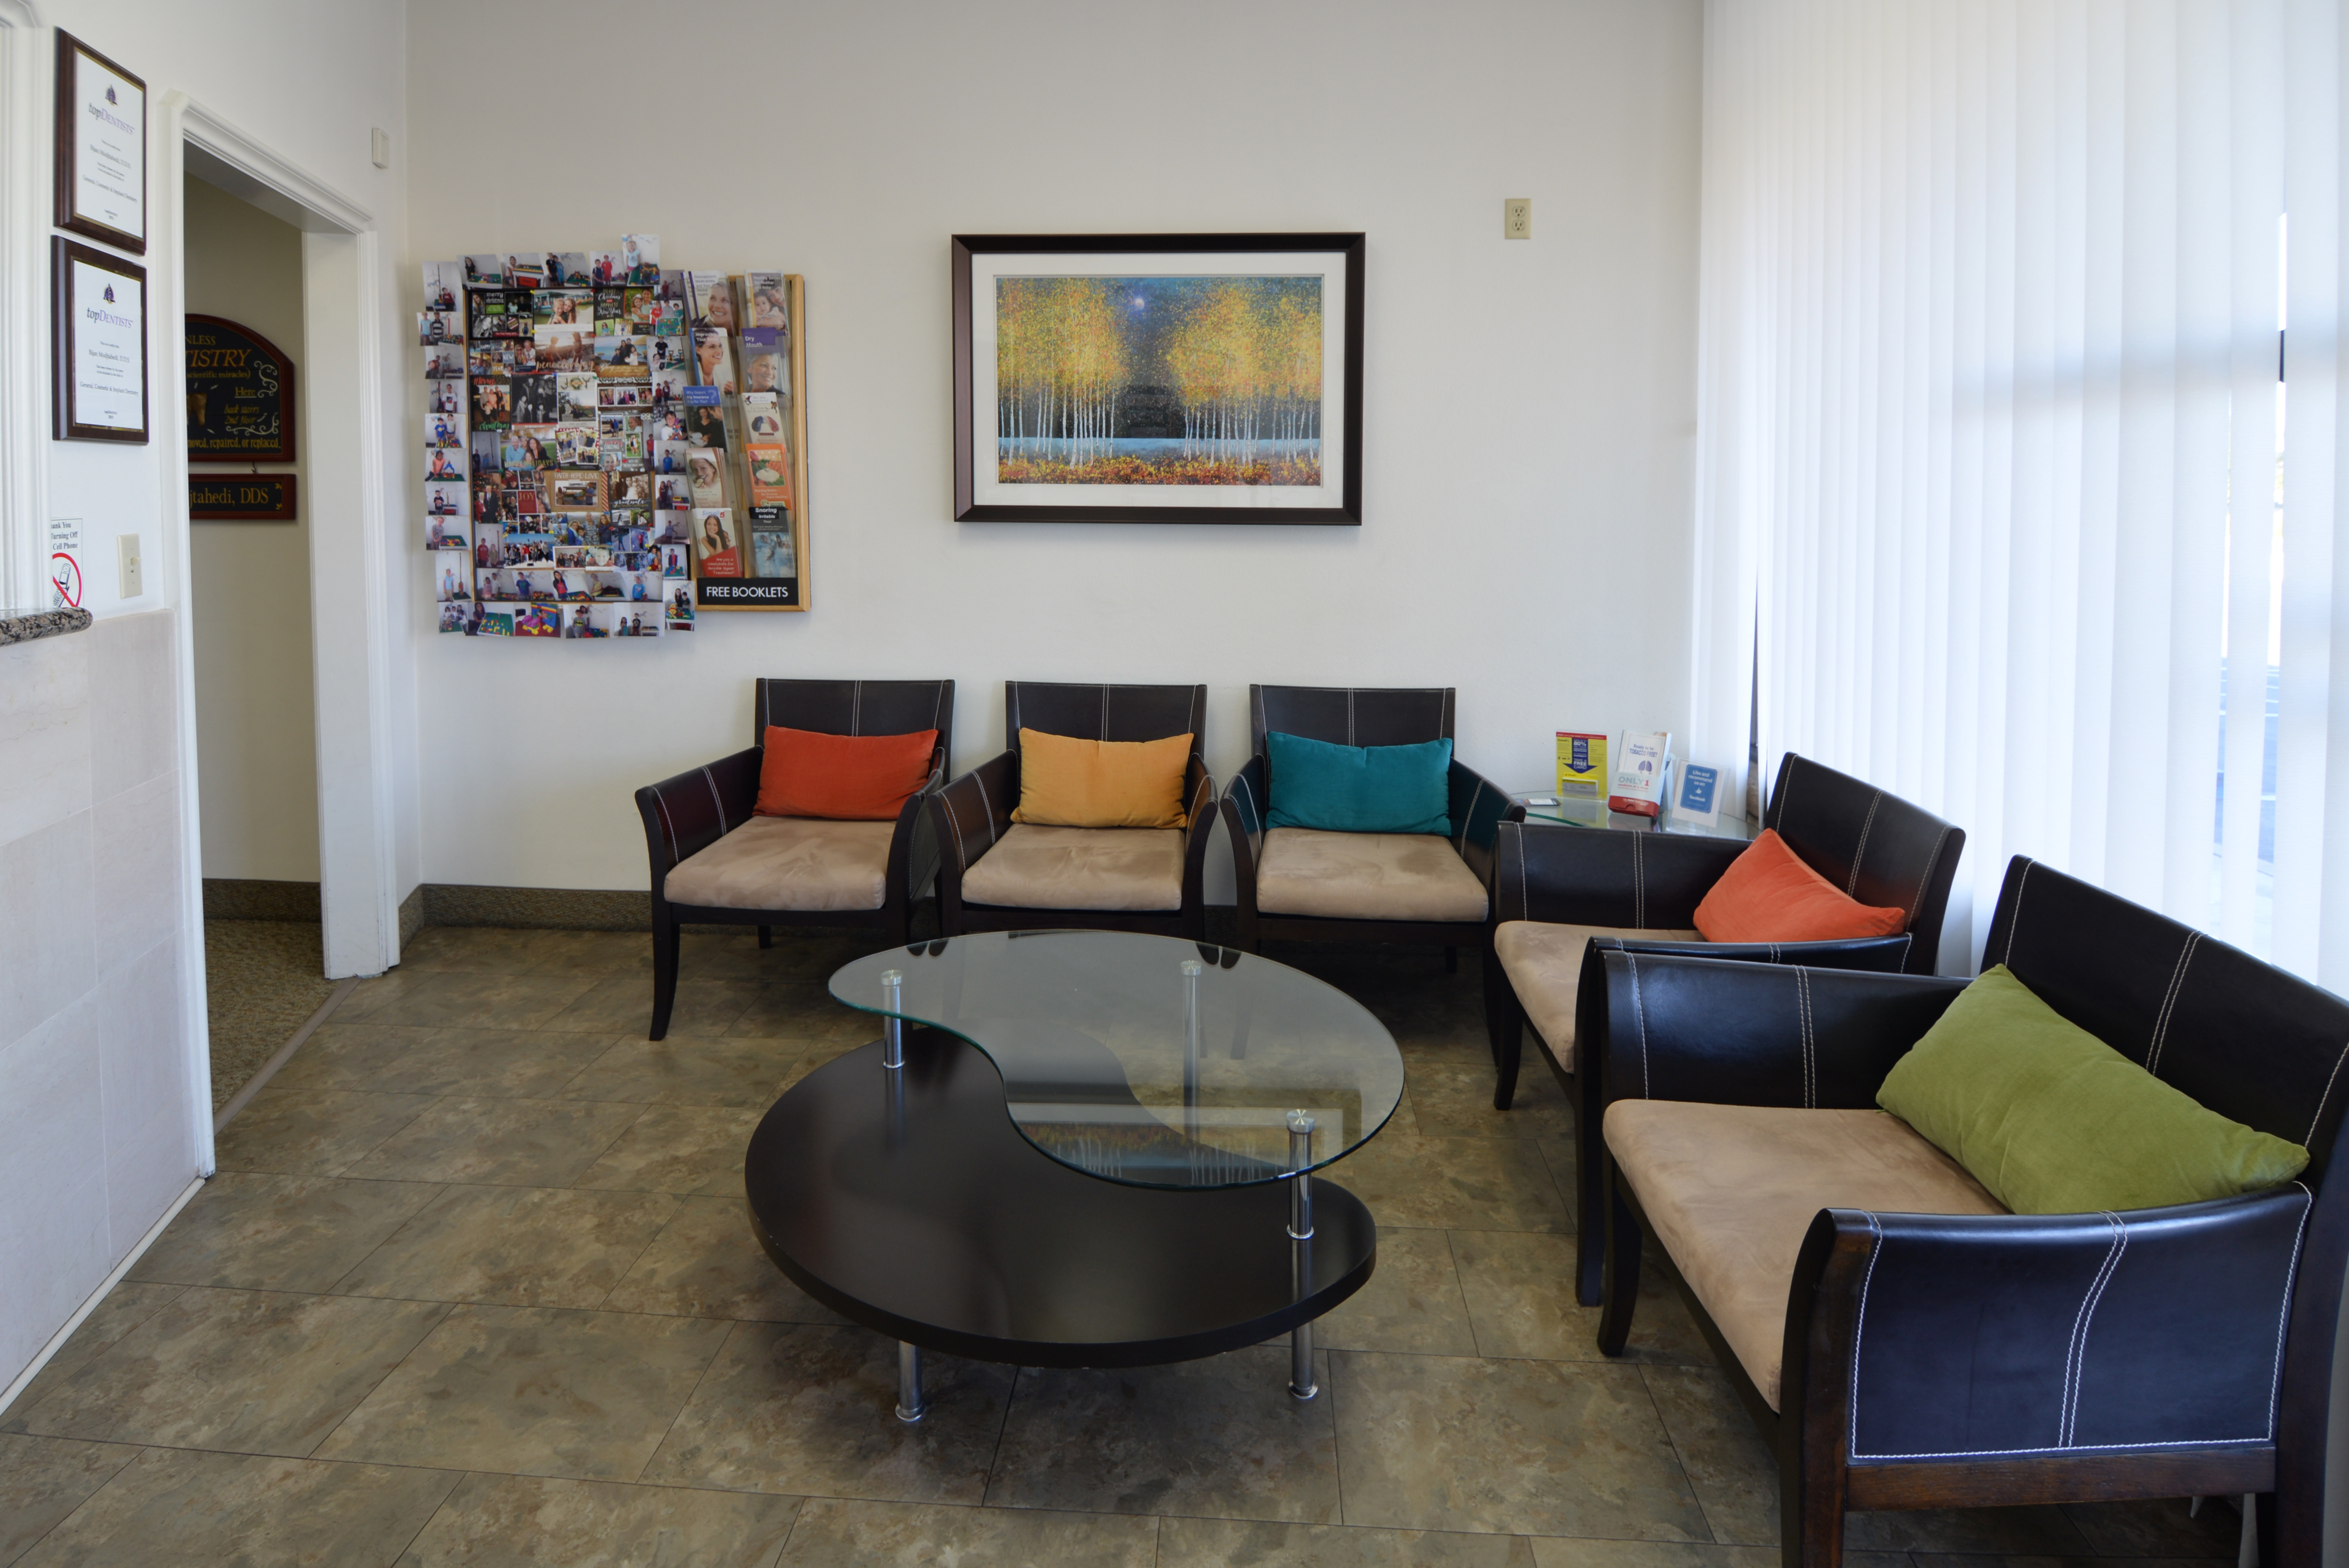 The waiting room at Bijan Family Dental Practice in Fountain Valley, CA